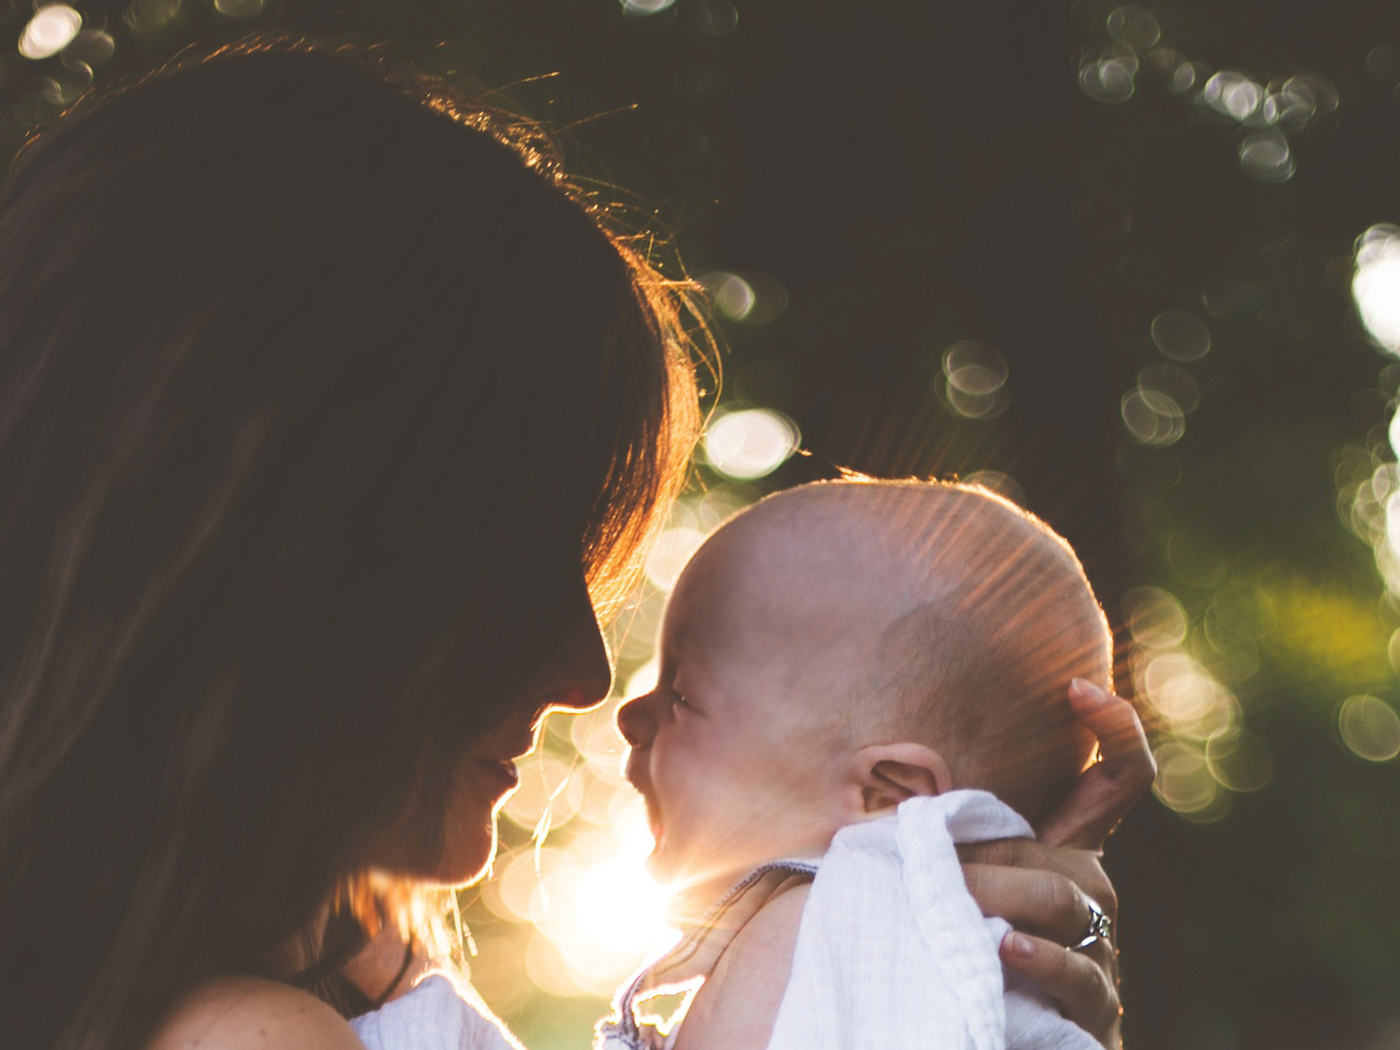 mother-and-child-cute-y4.jpg